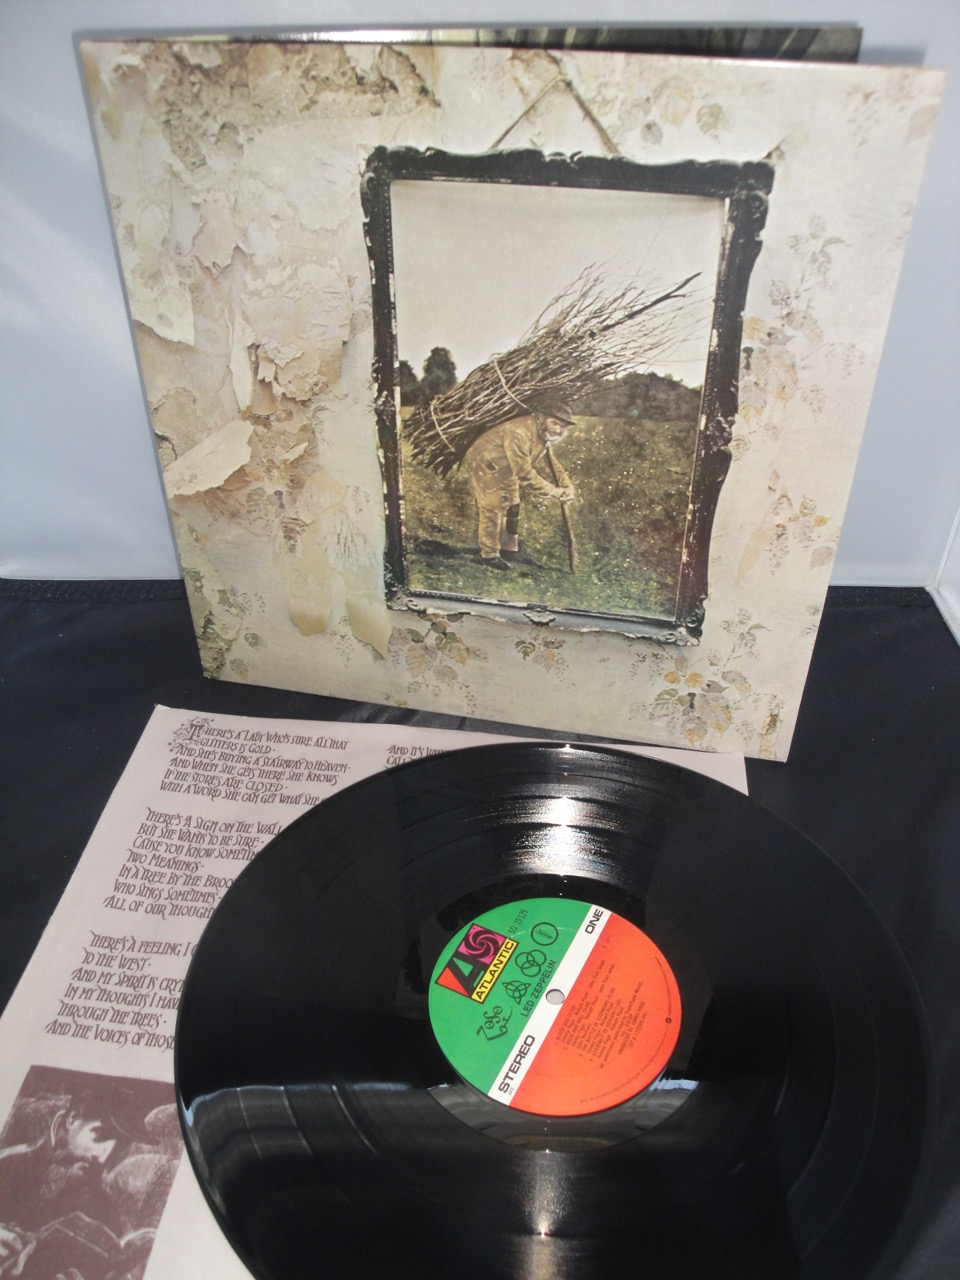 Led Zeppelin - Untitled - Atlantic, SD 19129 Vinyl LP, Reissue, Club Edition, CRC